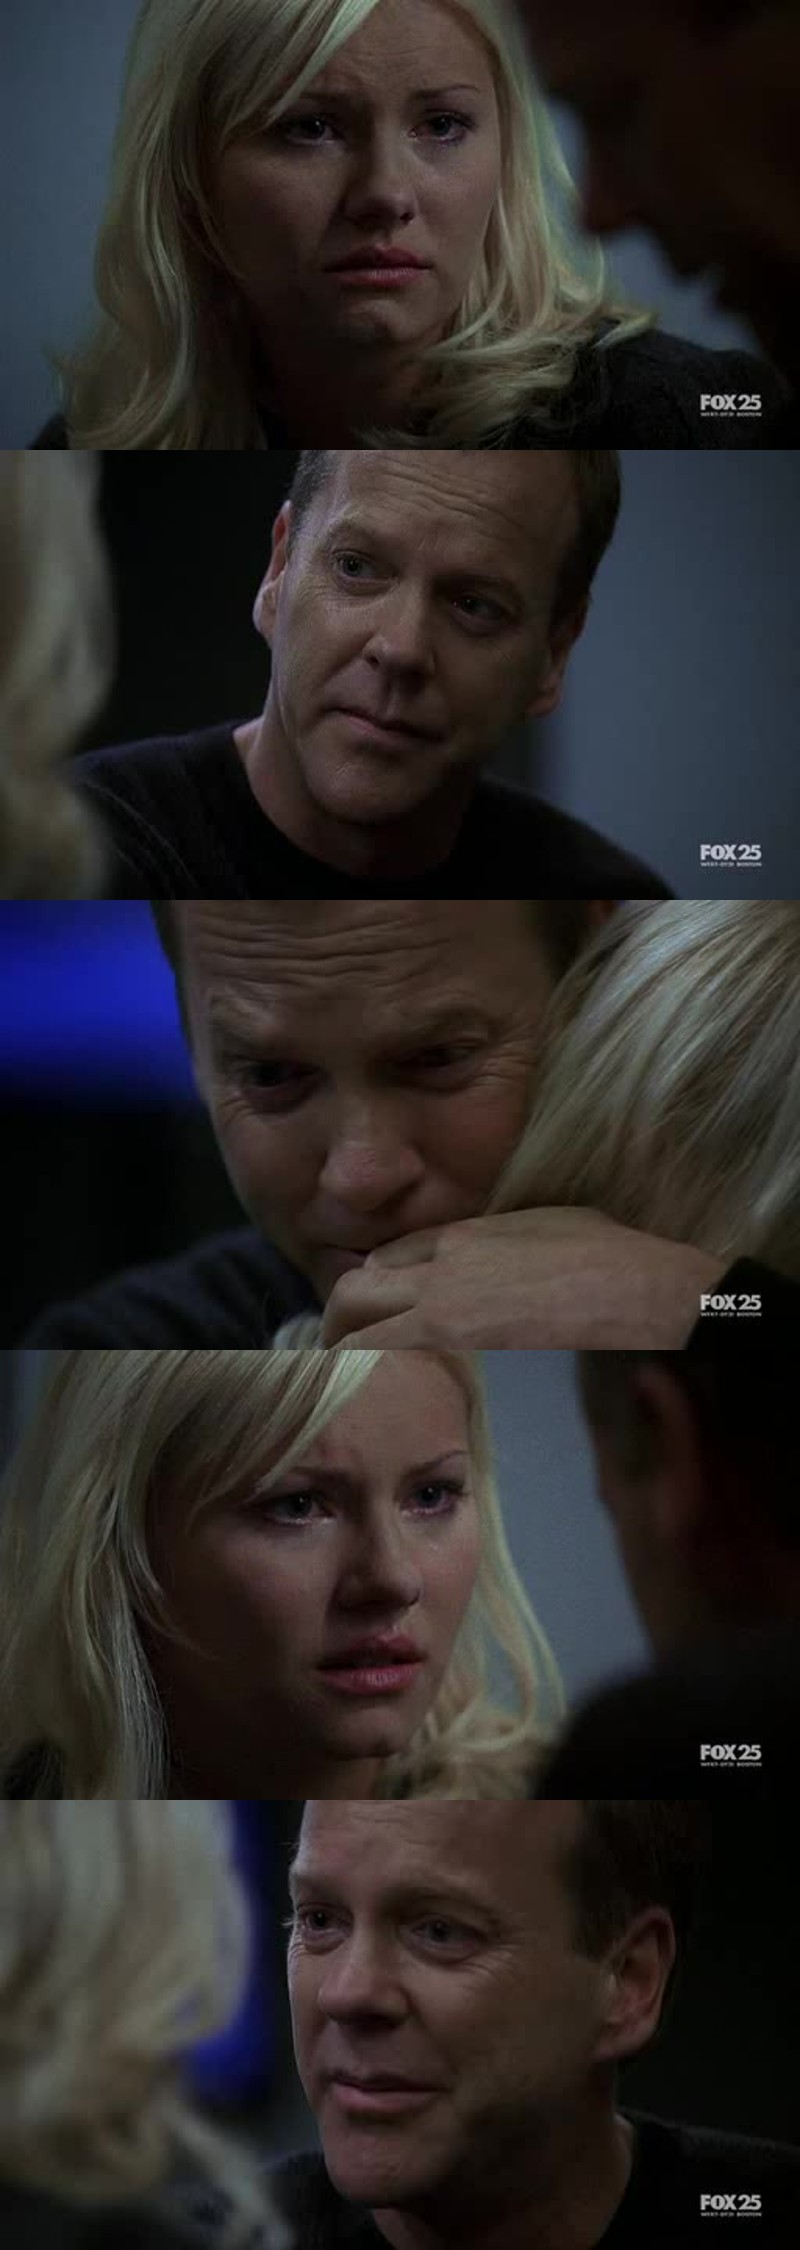 That was one fucking surprising twist. wtf Tony?!  But the scene between Jack and Kim totally broke me. So many emotions!